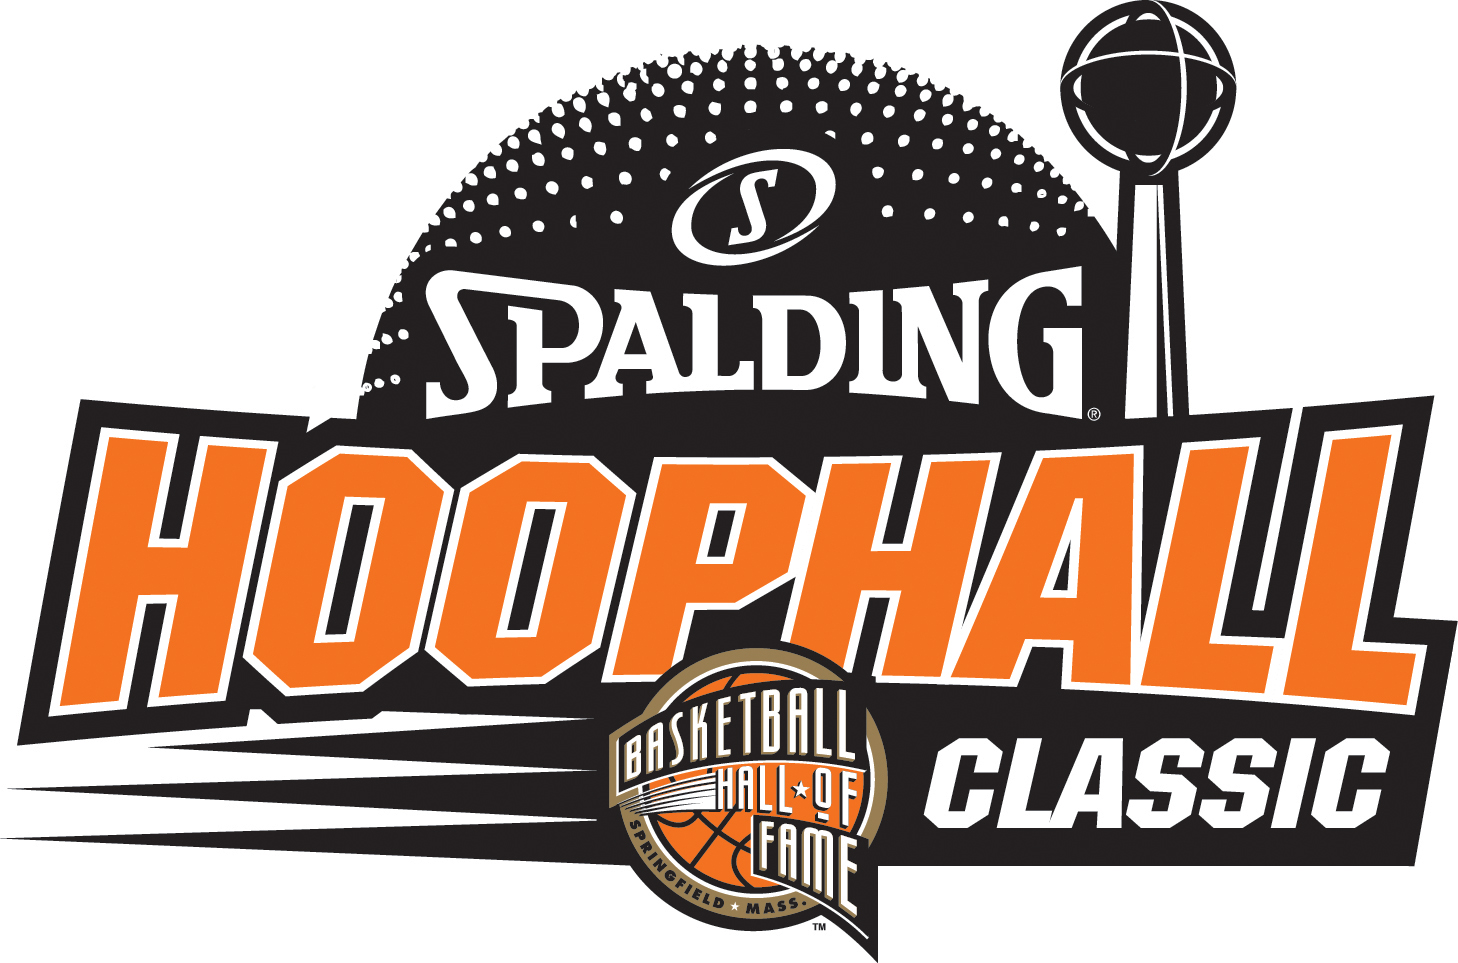 Hoophall 2013 Logo in JPEG-1.jpg